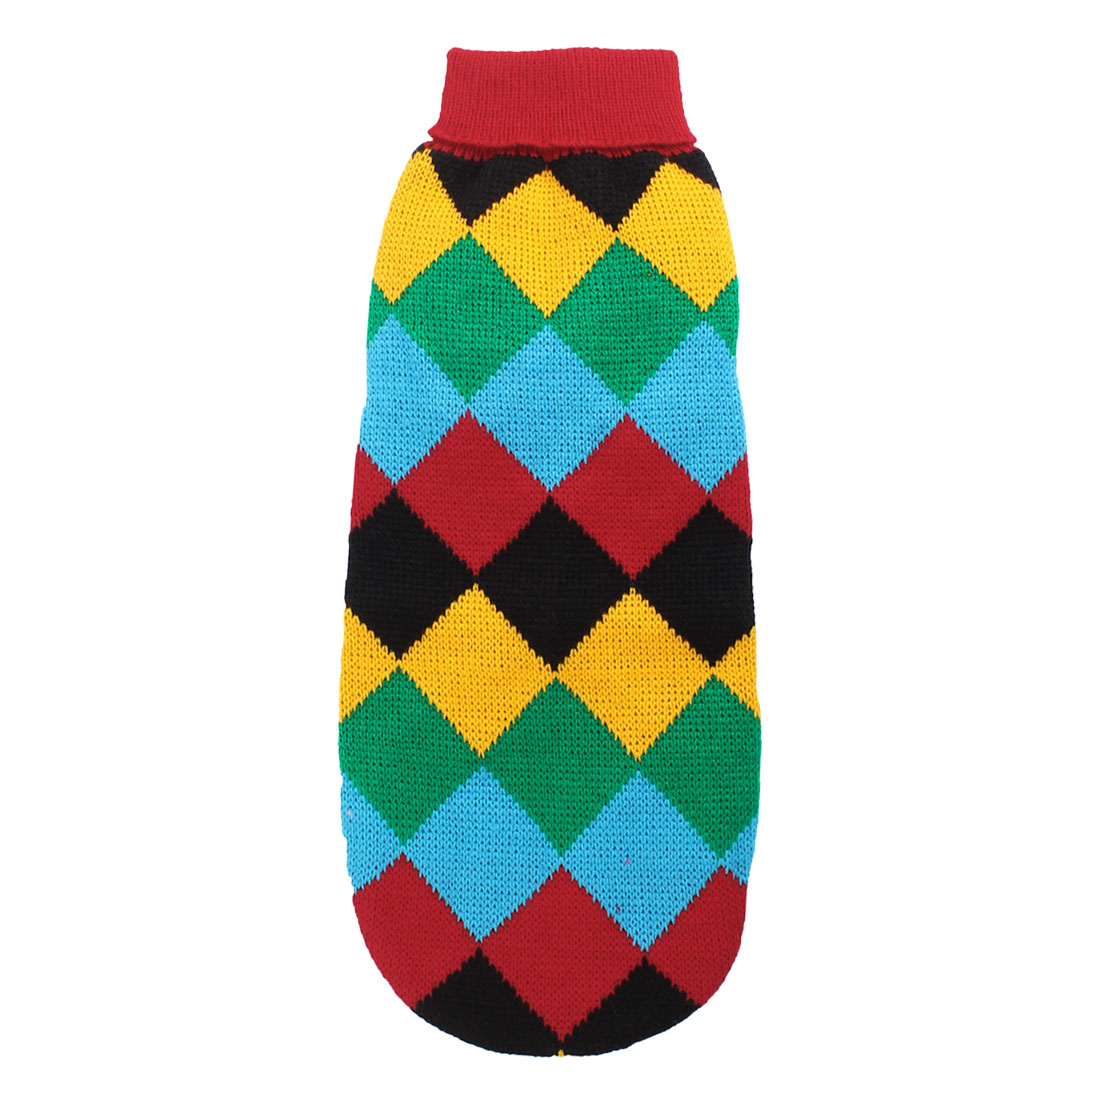 Unique Bargains Warm Ribbed Cuff Argyle Printed Pet Dog Yorkie Apparel Sweater Multi Colors S